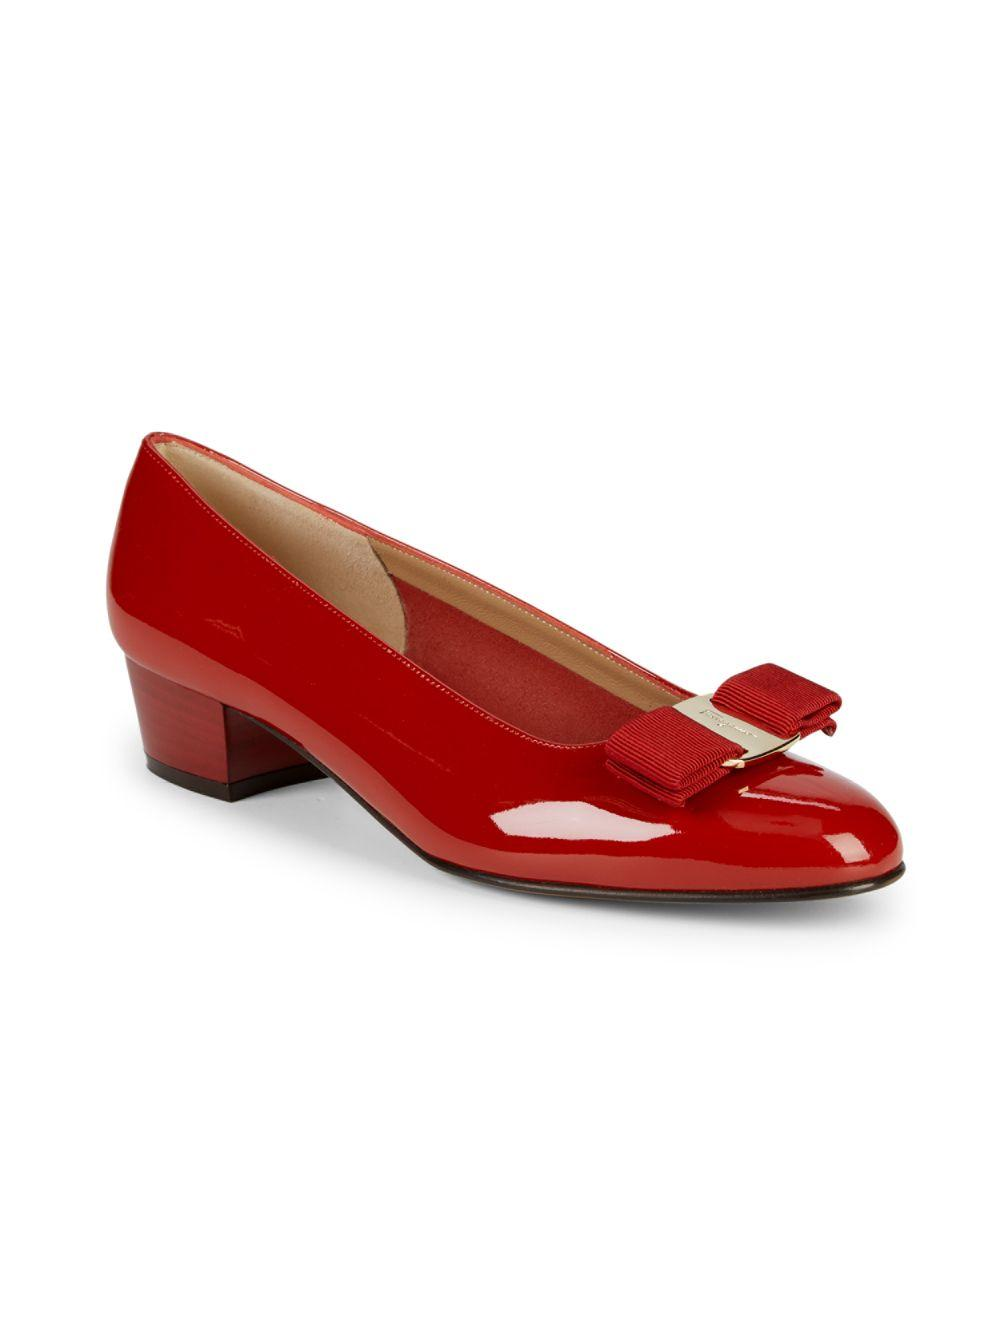 939ab6d94ff2 Lyst - Ferragamo Bow Detail Patent Leather Pumps in Red